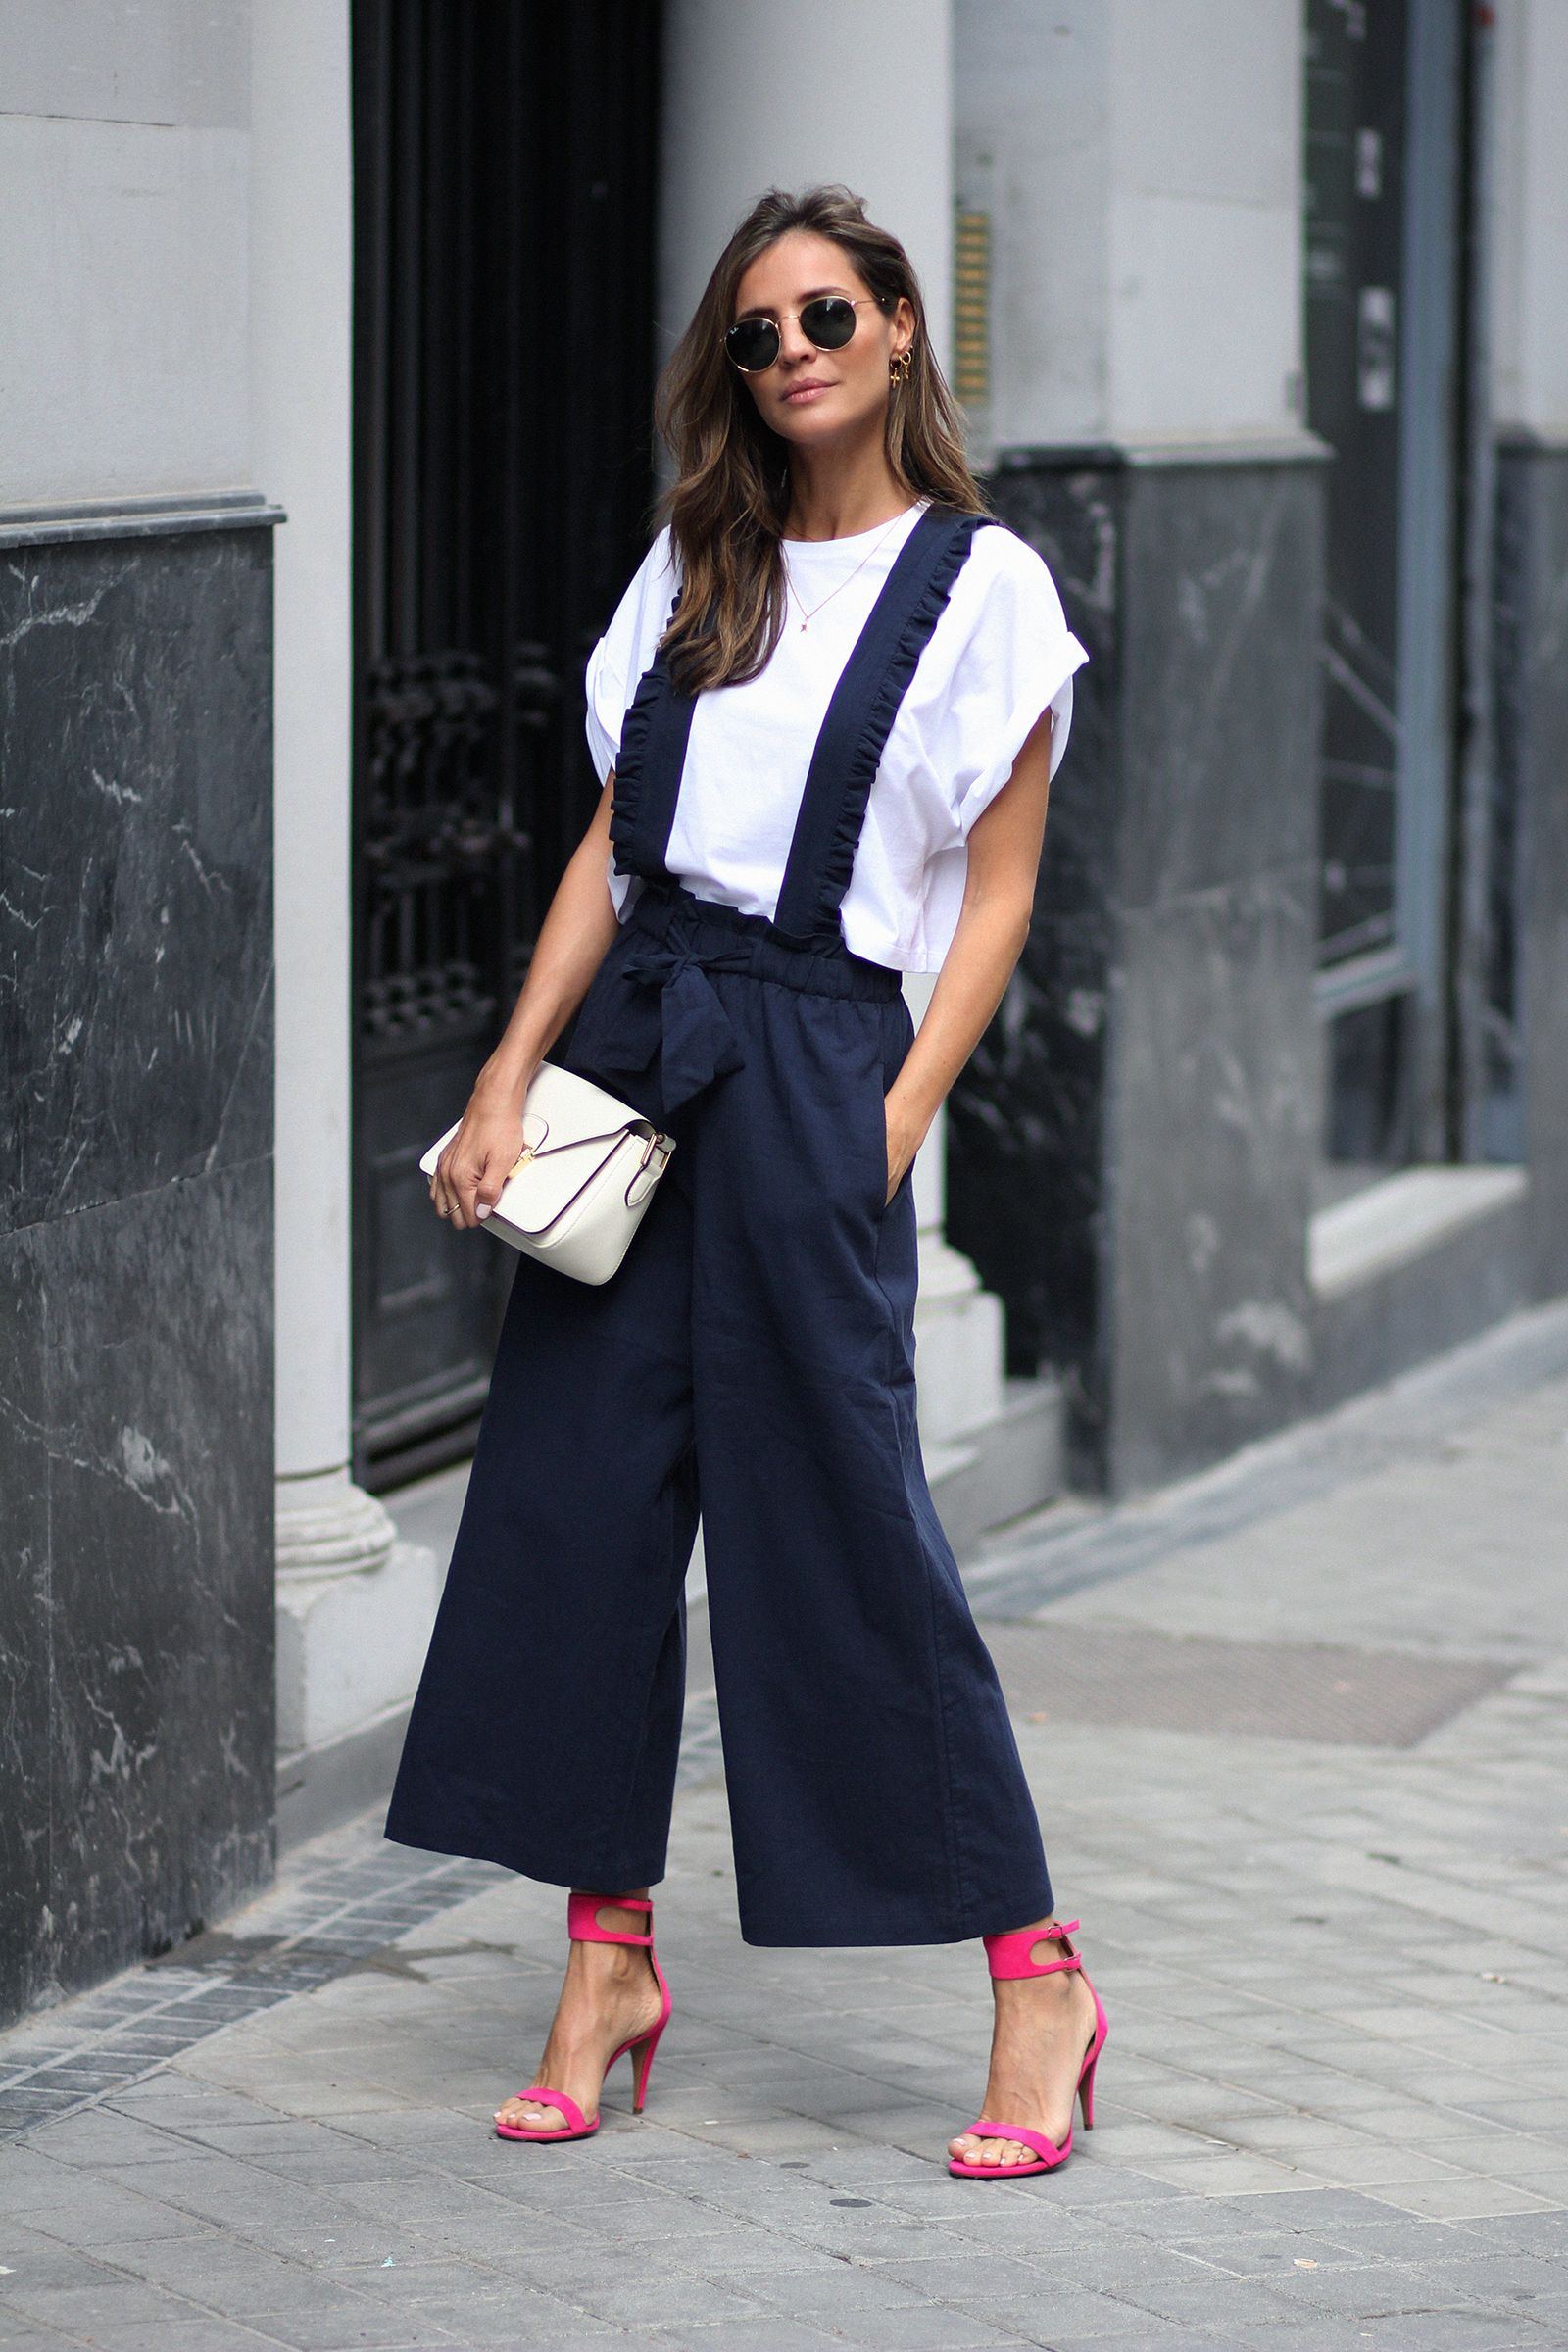 61b6c24a8a4 White top+navy wide-leg jumpsuit+pink  fuchsia ankle strap heeled  sandals+white clutch+sunglasses+earrings. Summer Dressy Casual Outfit 2018